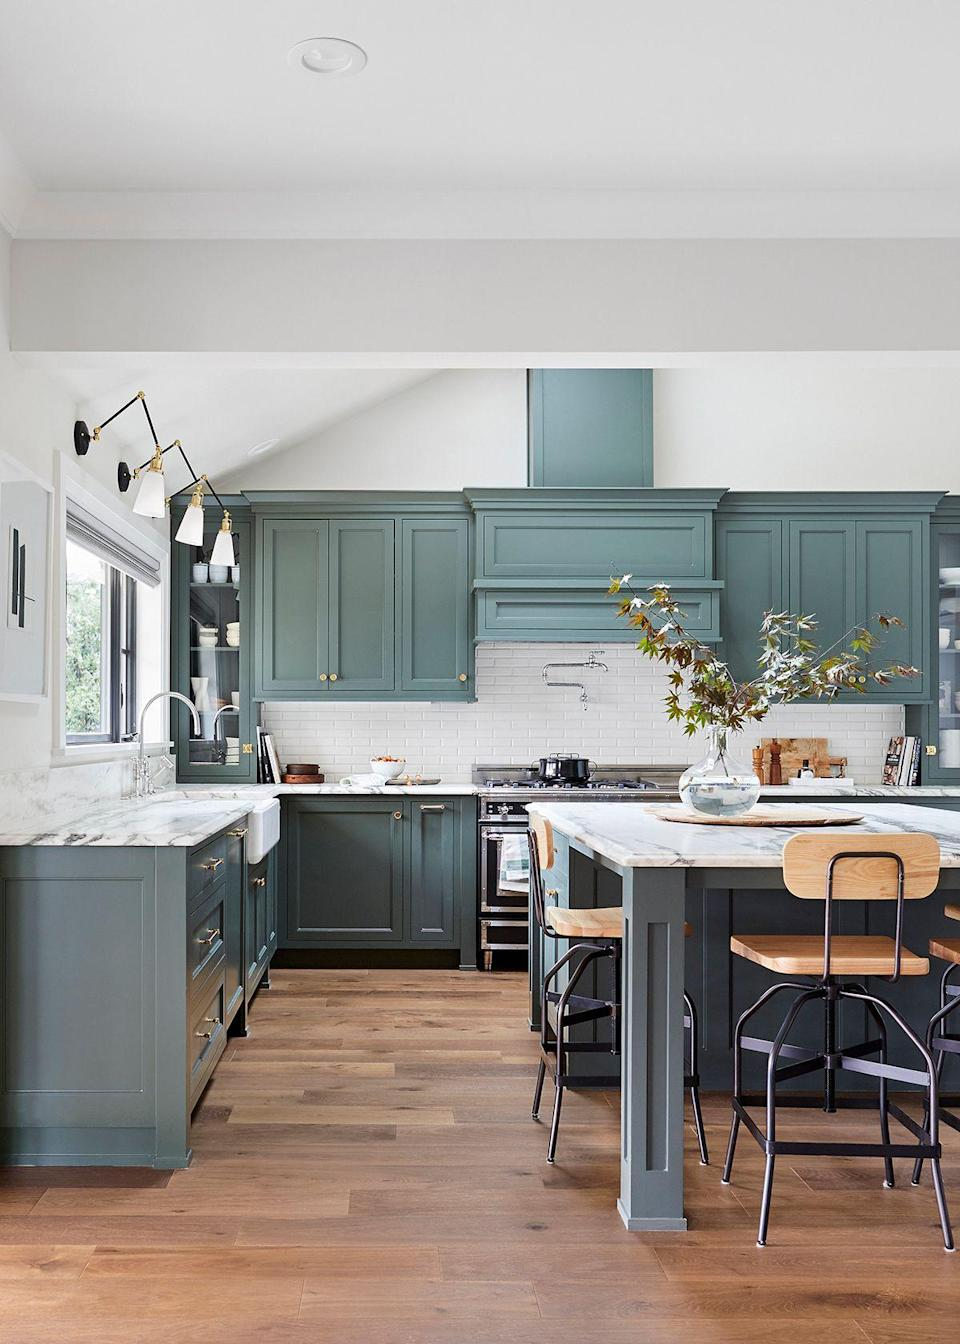 "Henderson tells us the house called for something that was ""original and special,"" and she wanted this kitchen to be the centerpiece of the home. ""Everyone always seems to gather in their kitchen, and this was open to both the family and dining rooms, so my goal was to create a mix of classic and modern, happy and sophisticated, with some moments,"" she says. Henderson also wanted to bring in a new big window to bring in a lot of natural light, but it is also a central view for anyone looking through it to see the kids playing in the yard below."